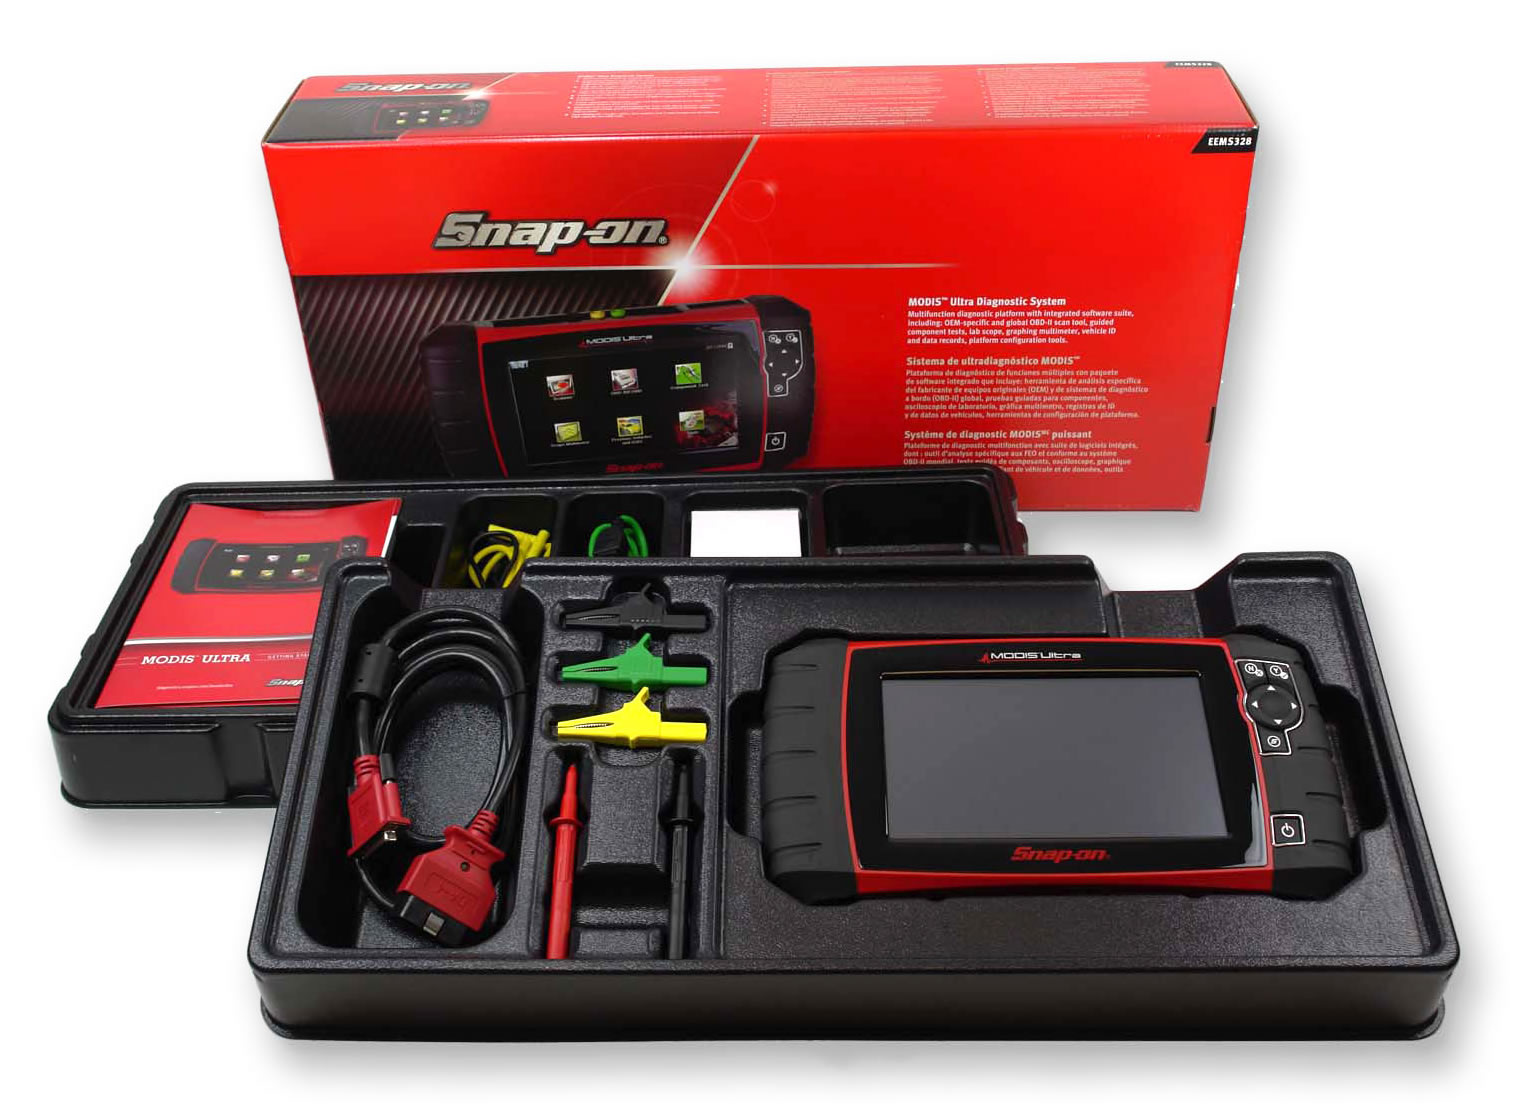 modis ultra obd software snap on diagnostics rh snapon com snap on versus manual hooking up monitor snap on verus pro user manual